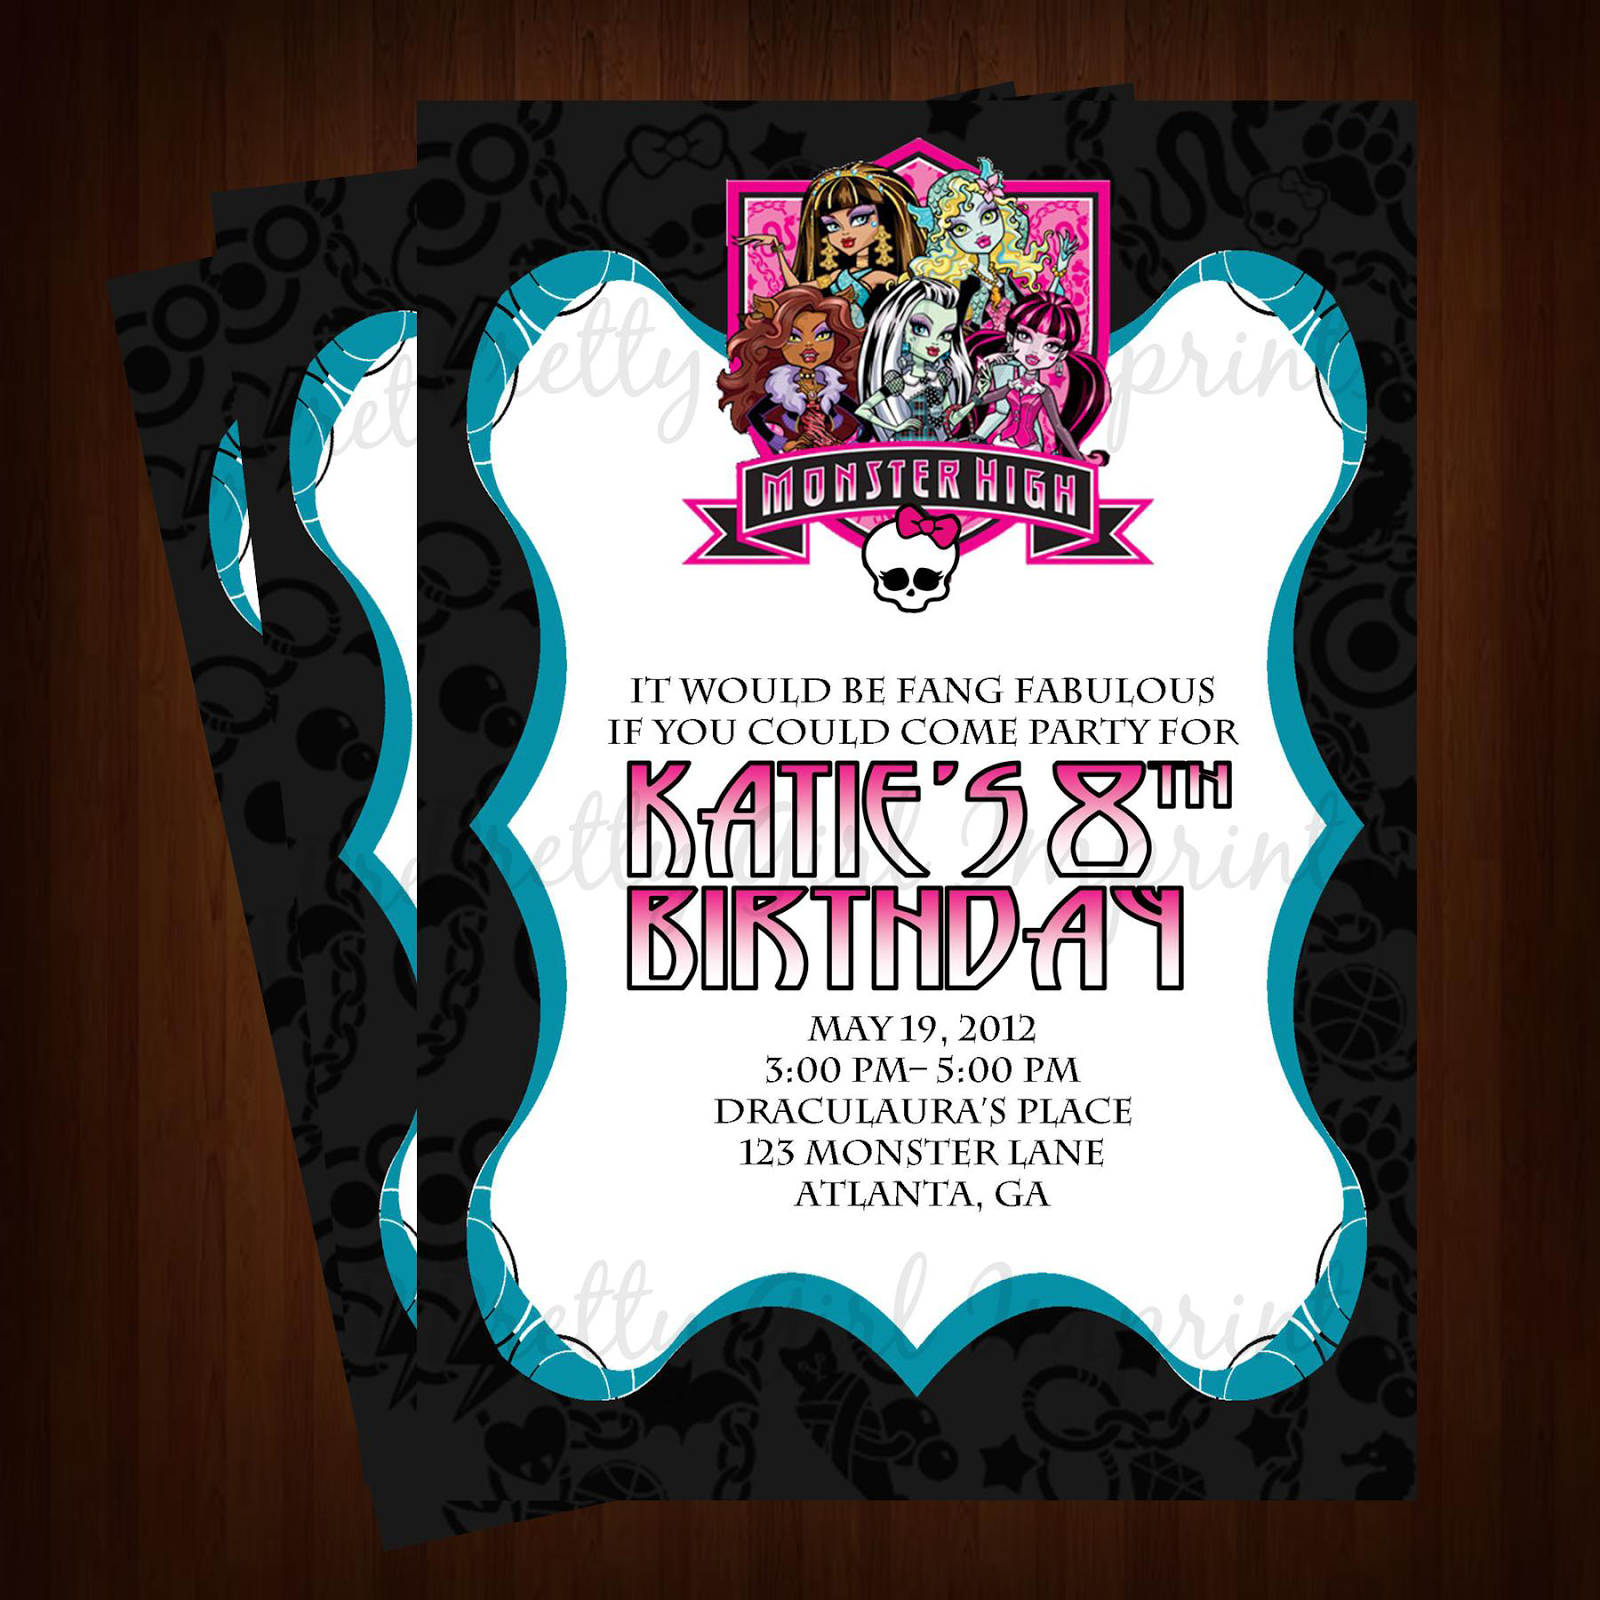 ... Anniversaire Monster High. .Monster High Birthday Invitation Templates